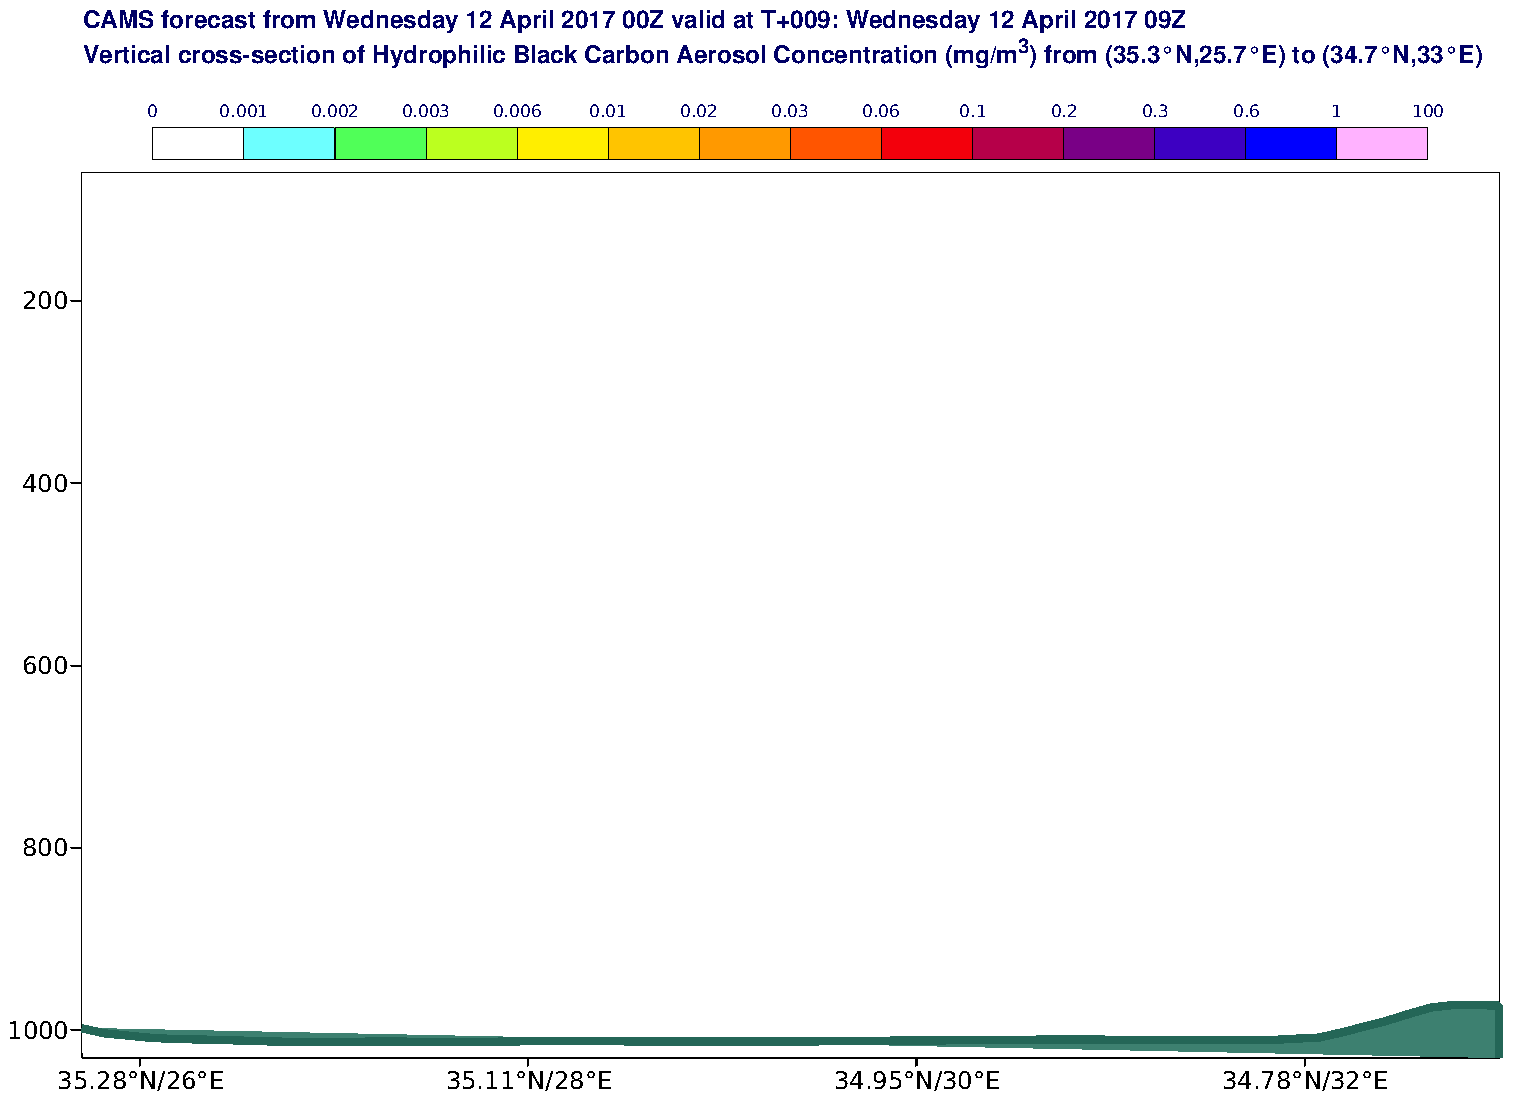 Vertical cross-section of Hydrophilic Black Carbon Aerosol Concentration (mg/m3) valid at T9 - 2017-04-12 09:00